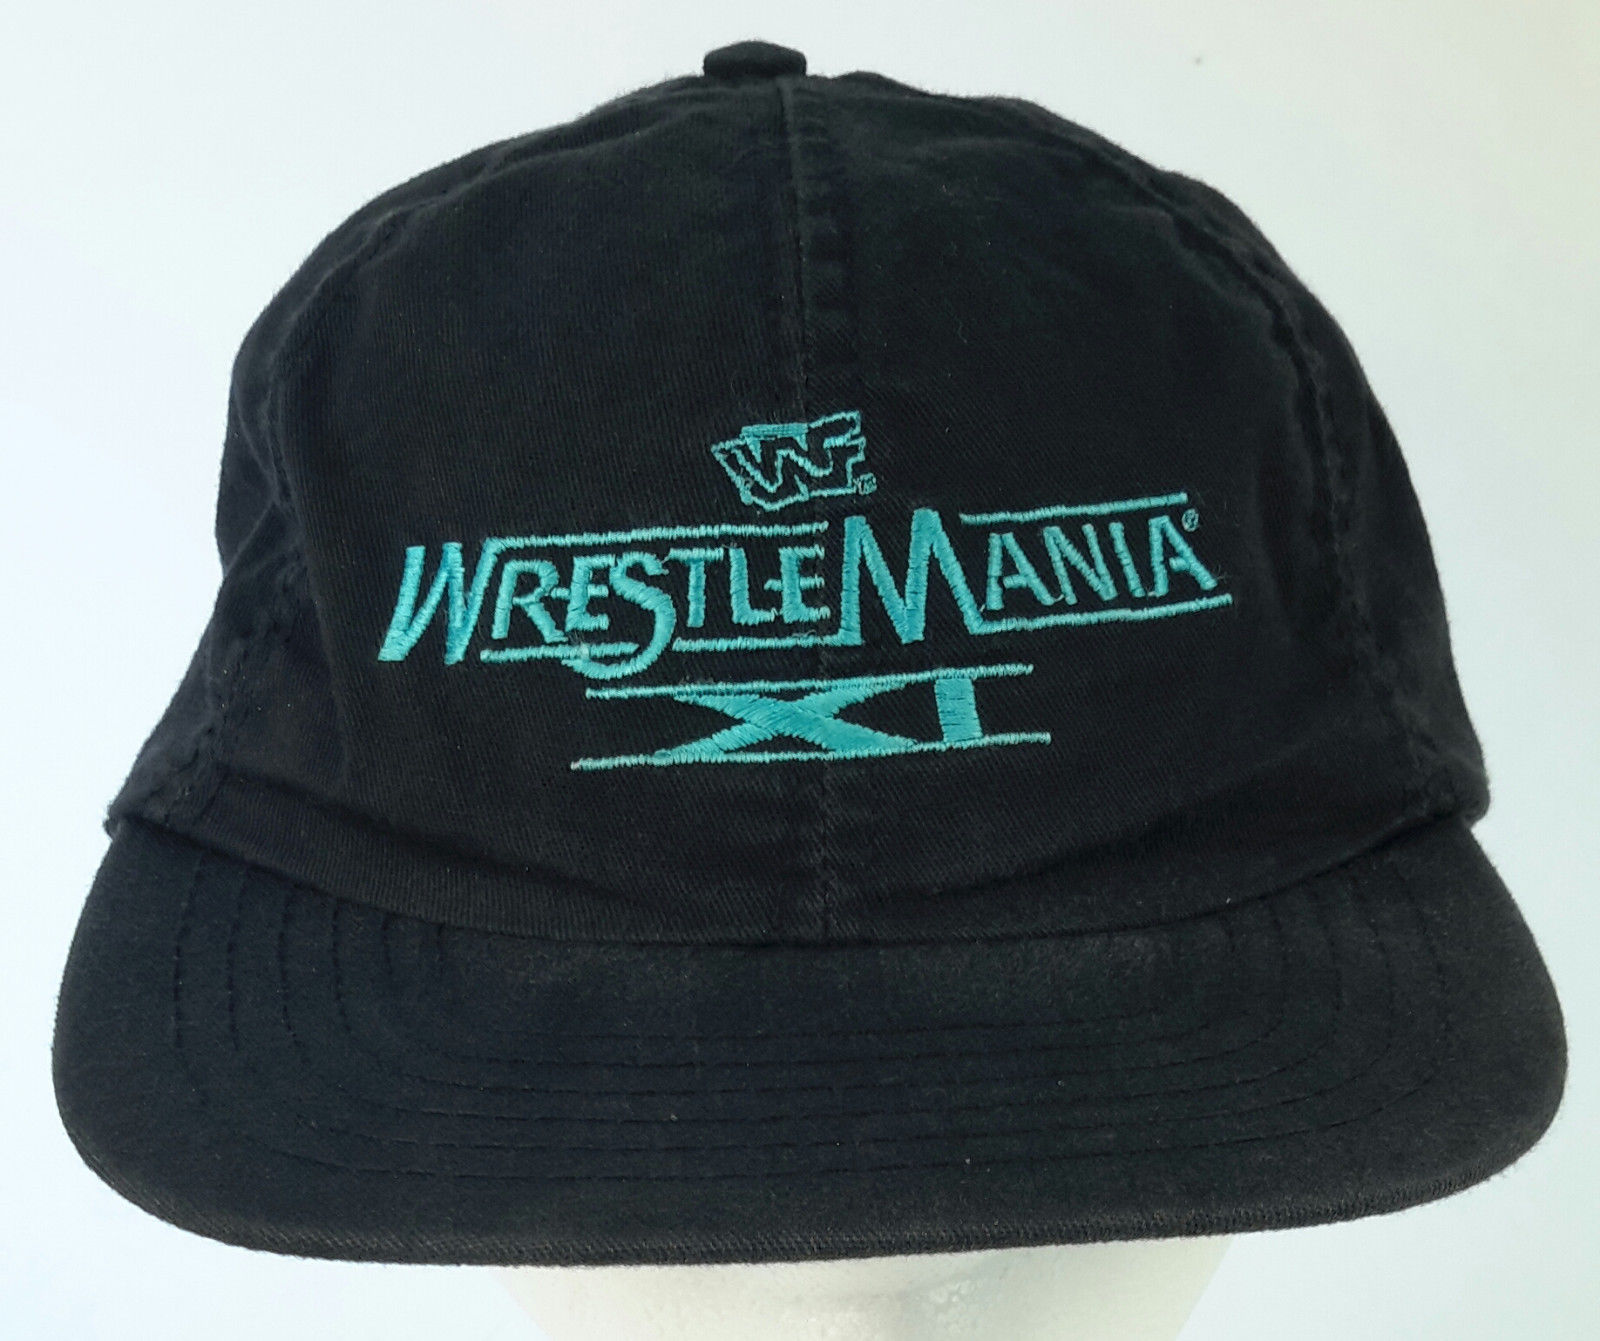 Wrestlemania XI hat